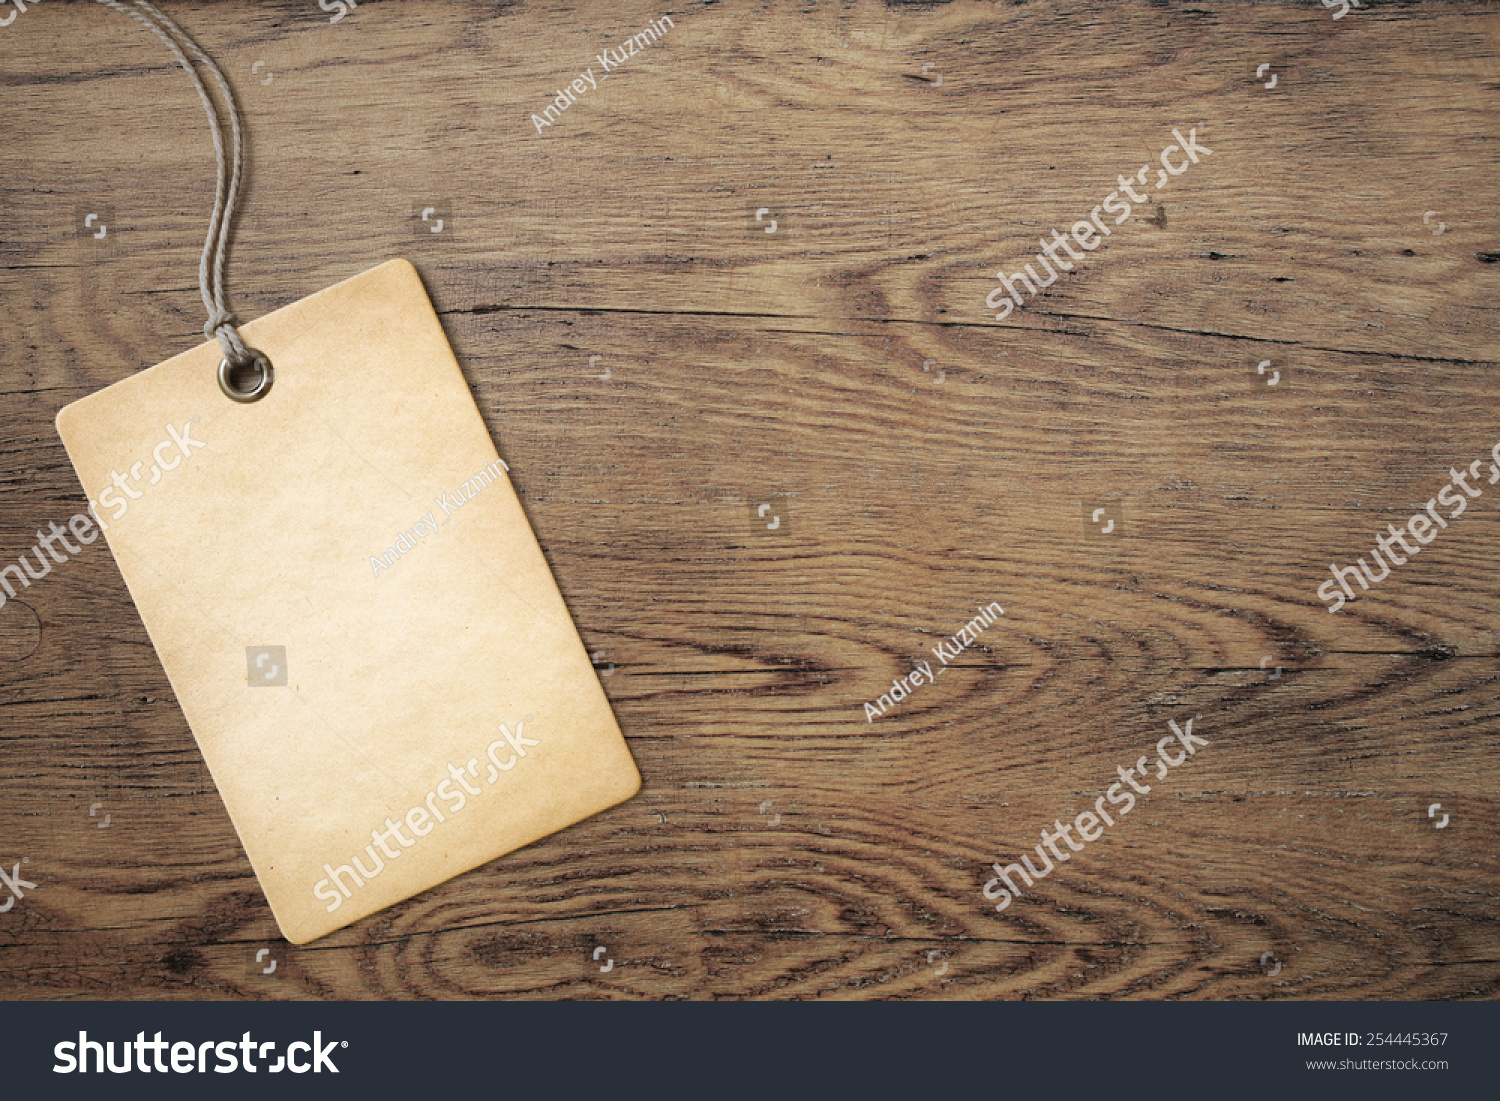 Price tag on old wooden table background stock photo for Tag table html